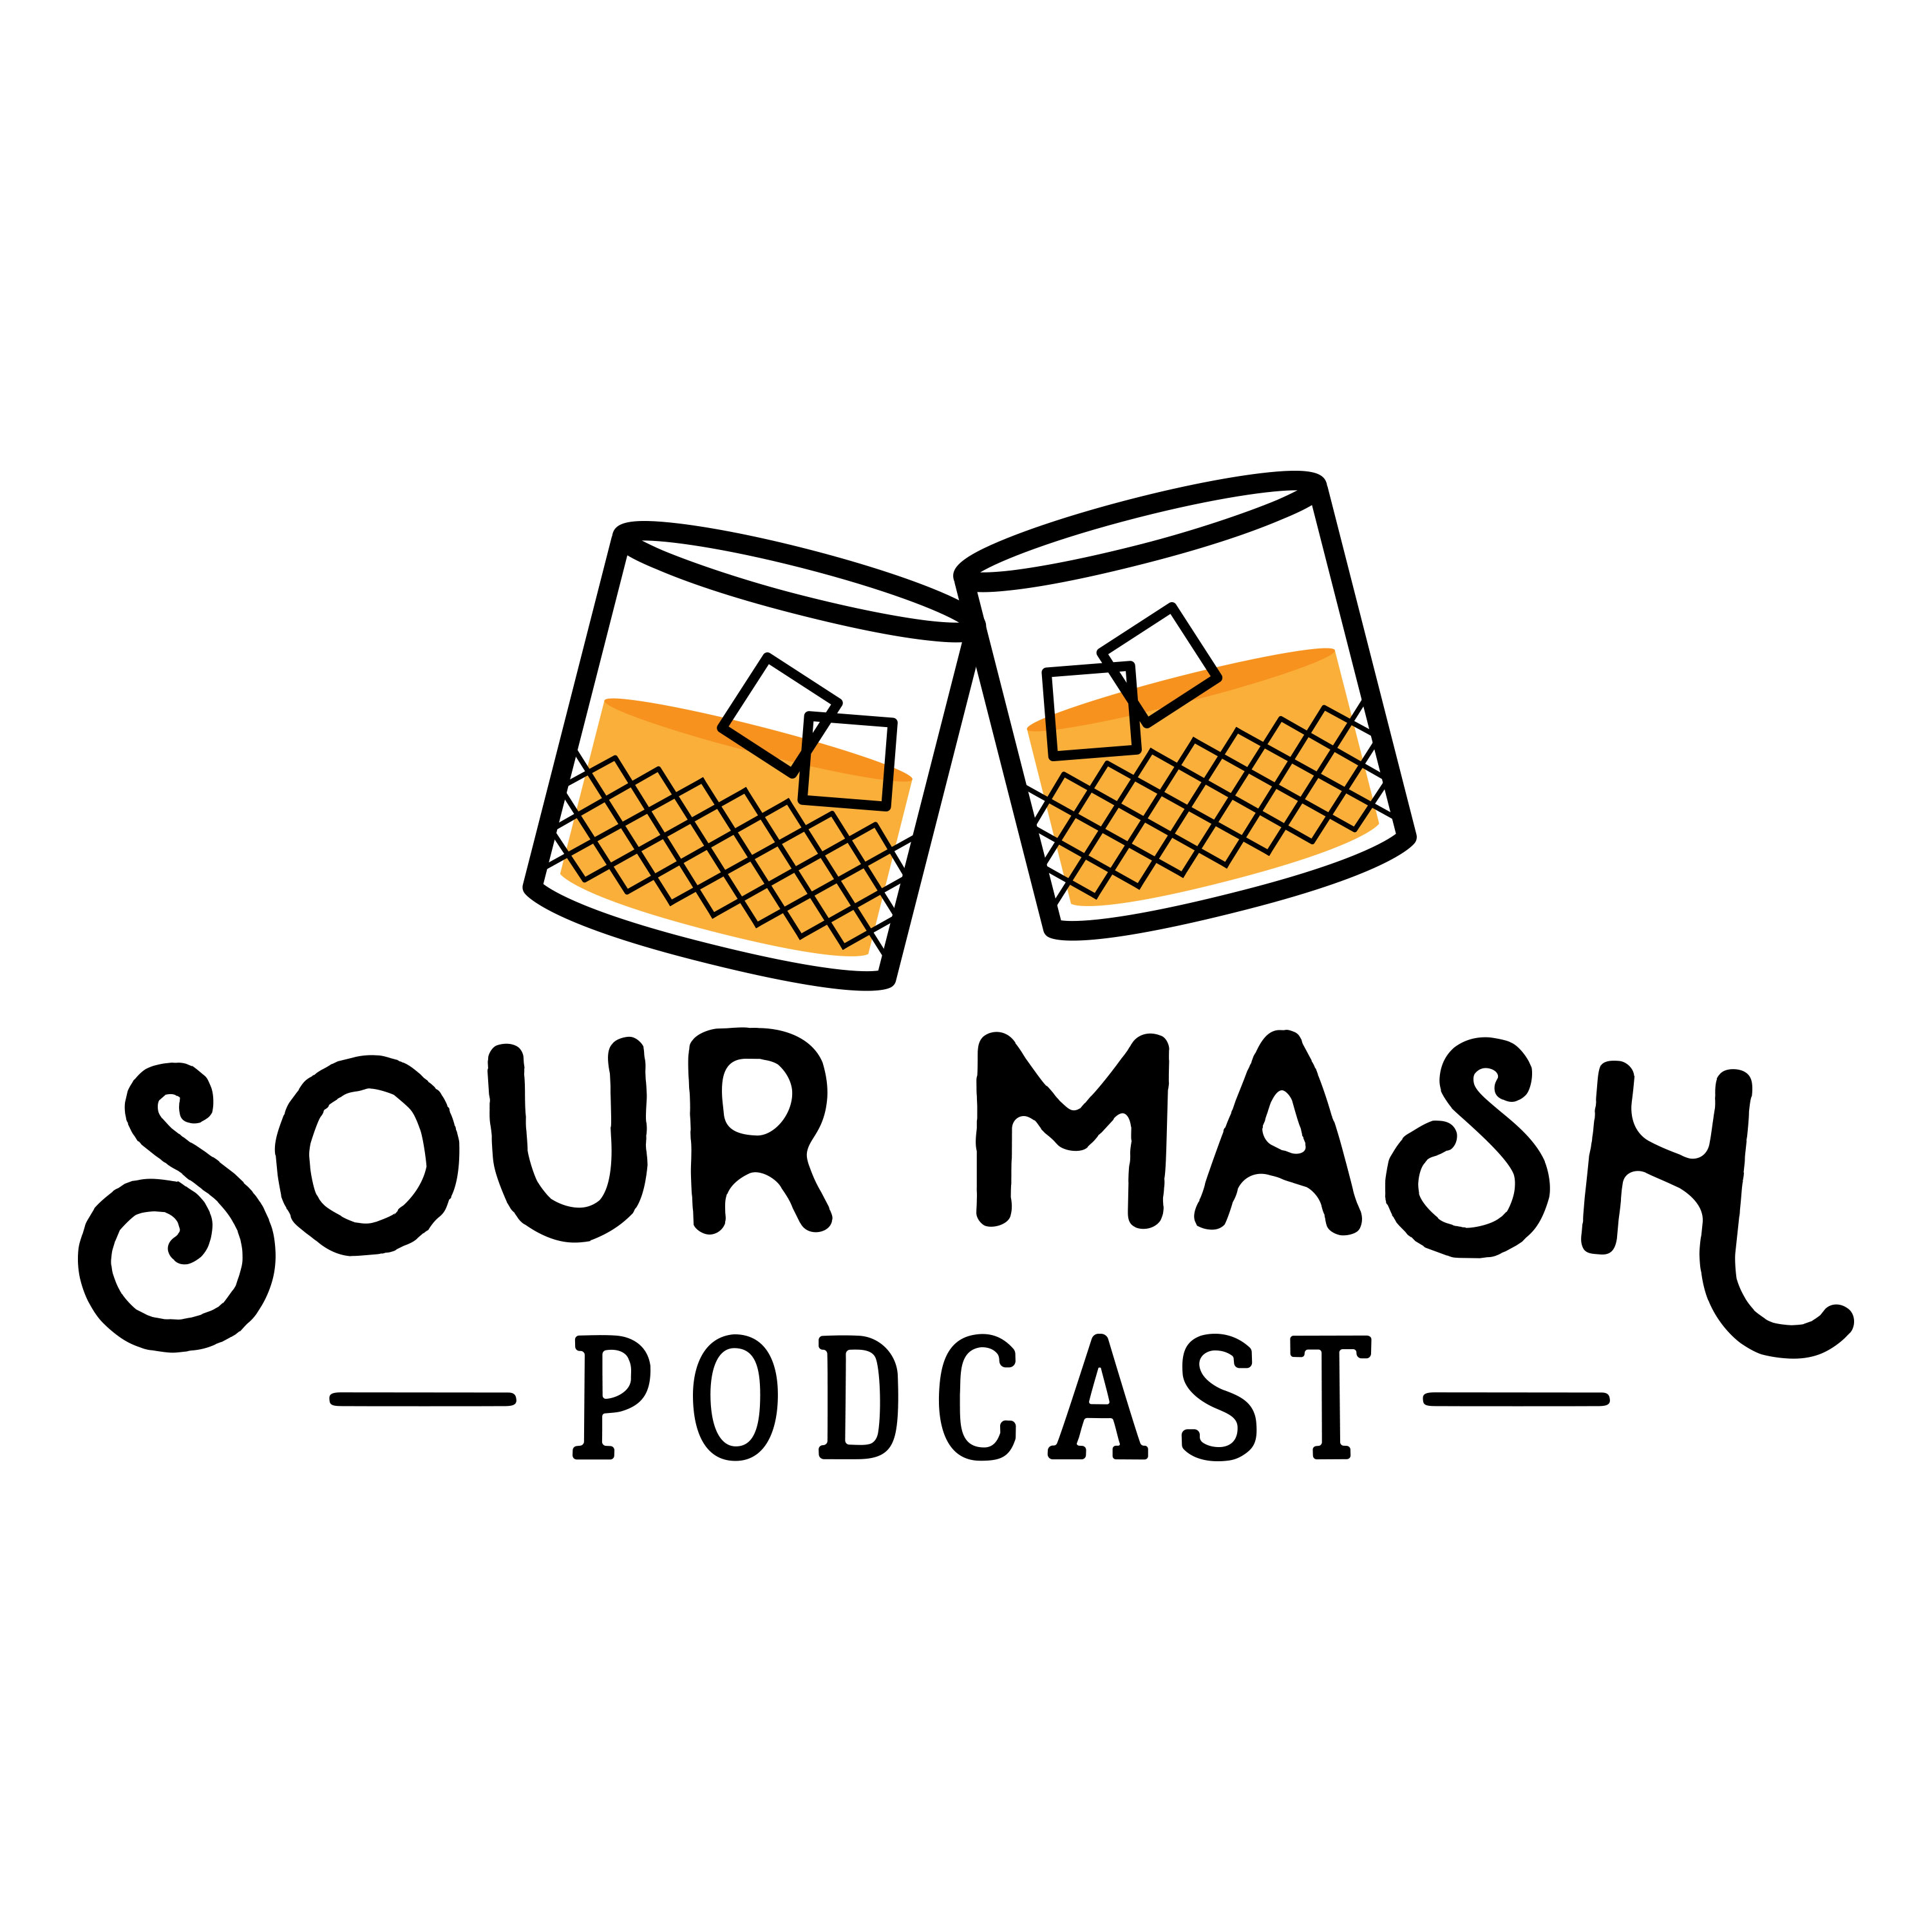 Episode 21 - That's a Human Foot!